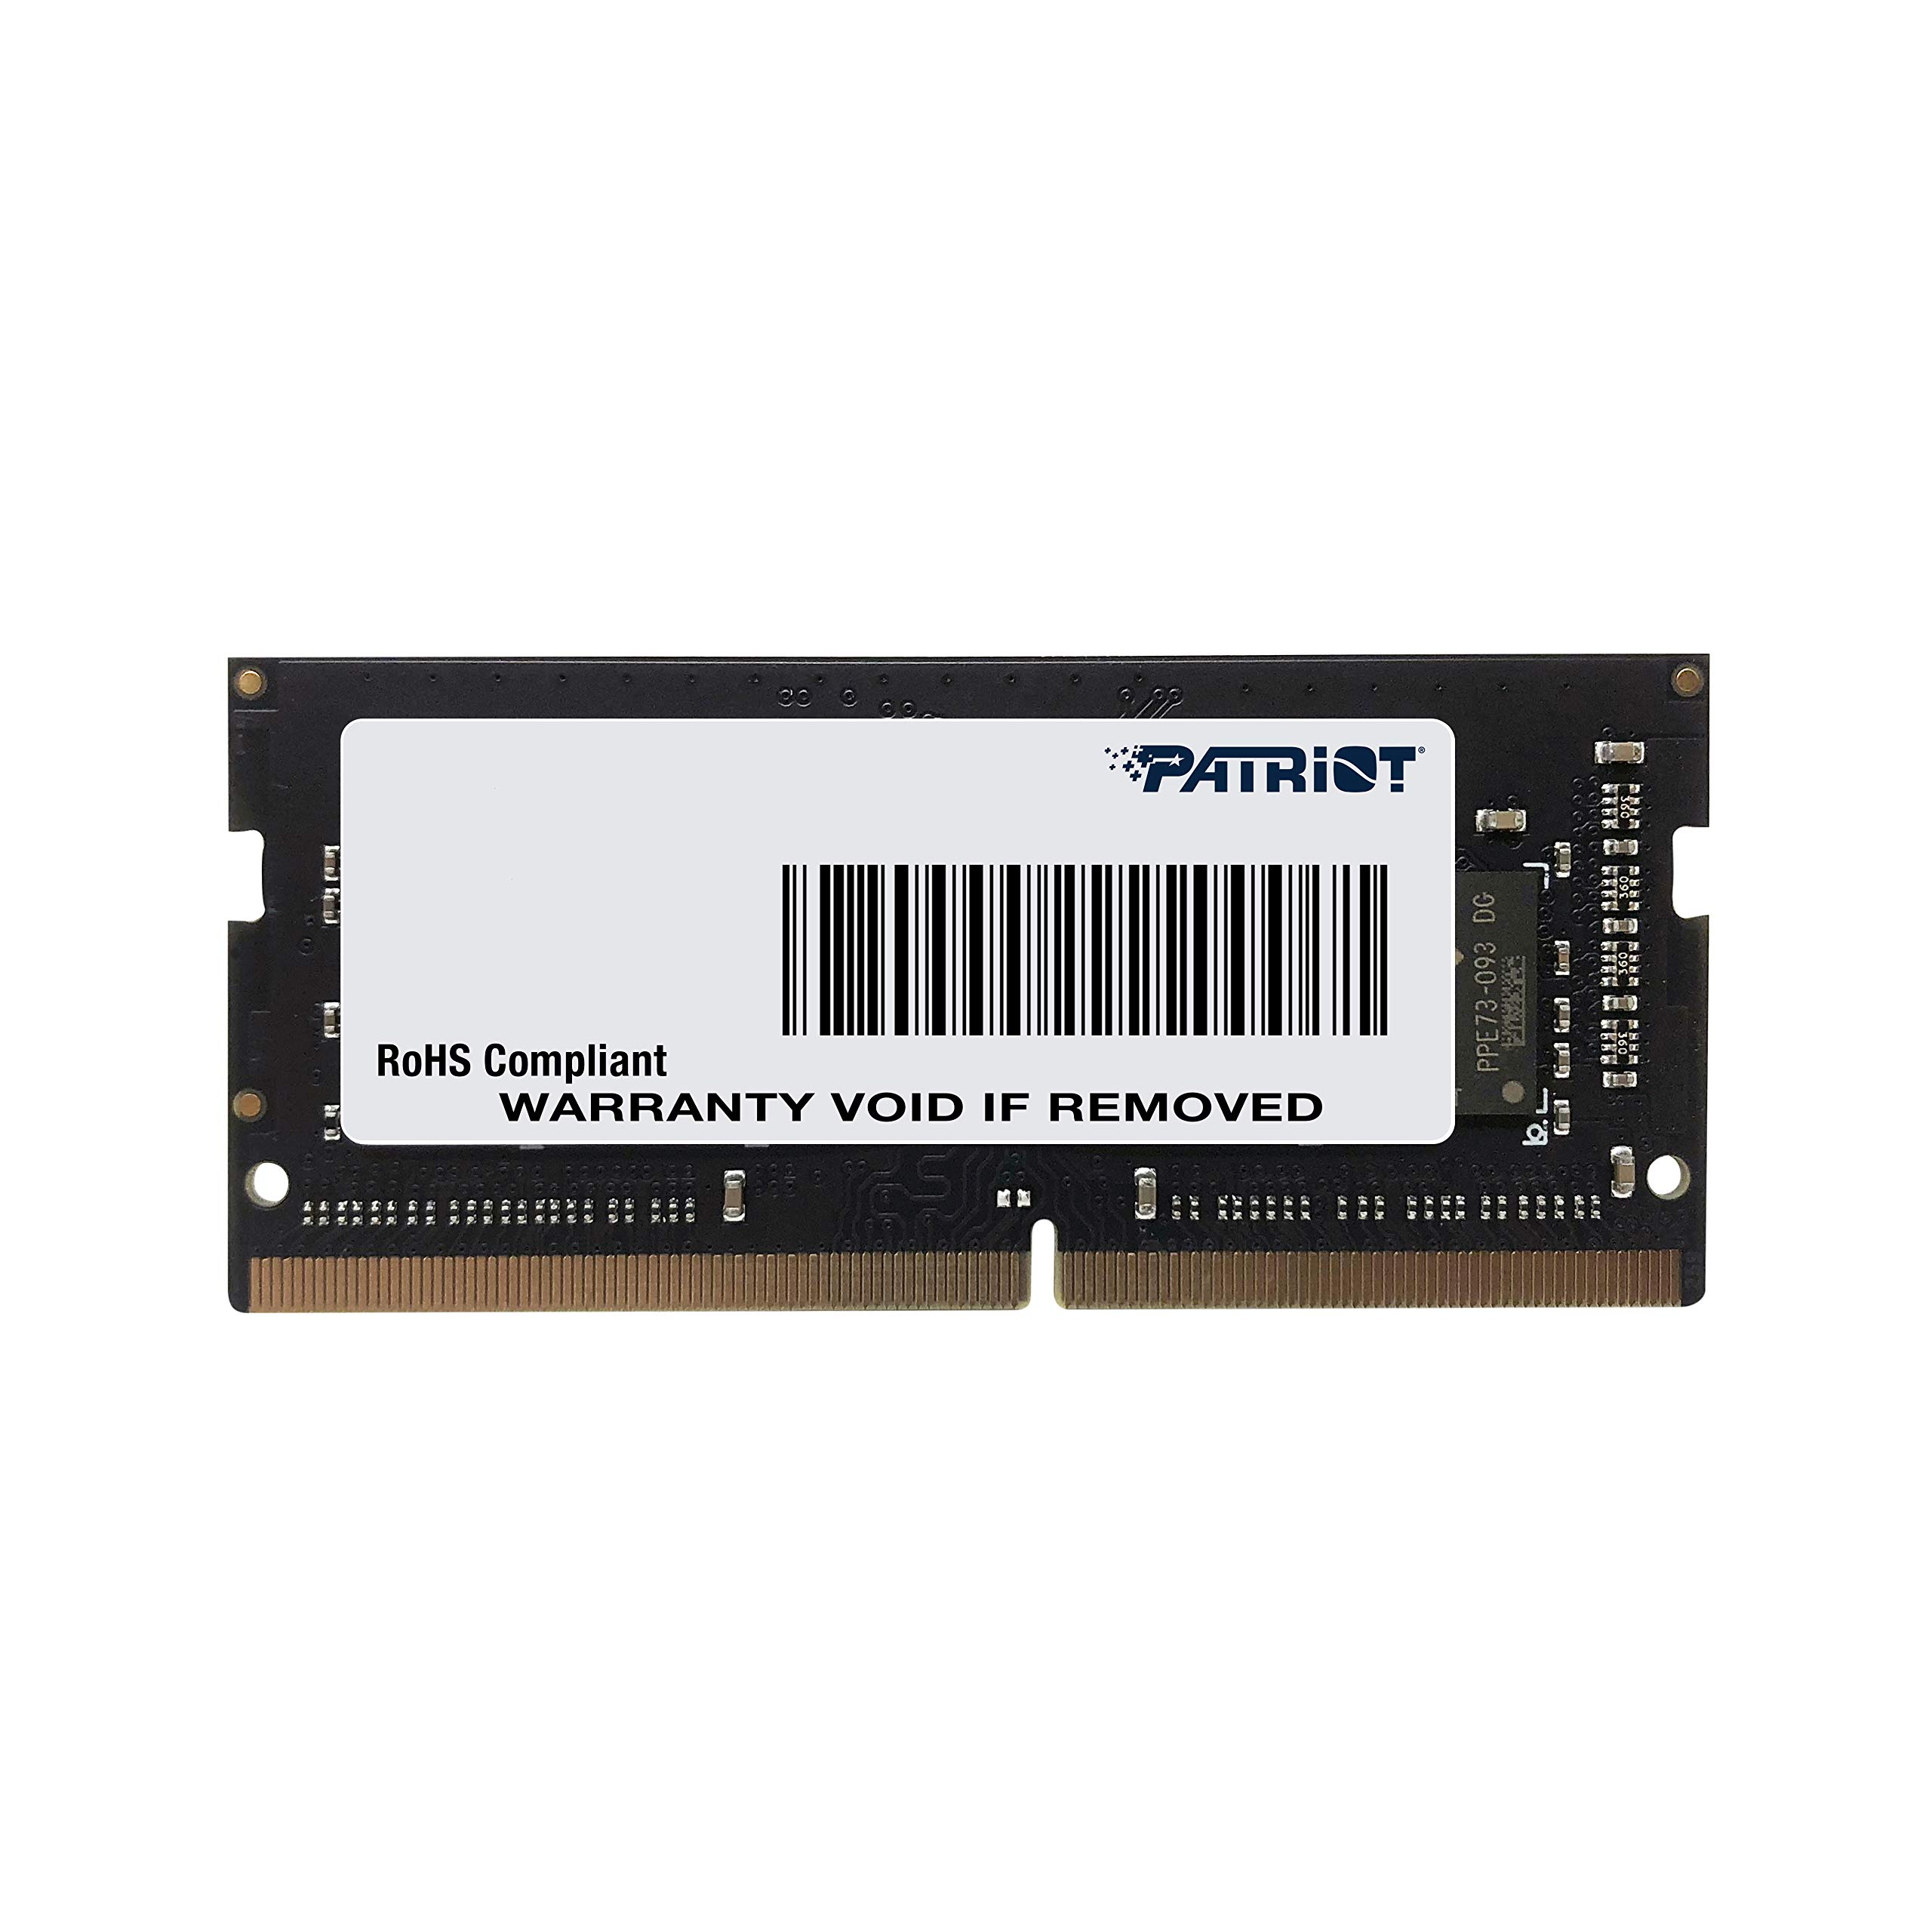 Memoria Ram 16gb Patriot Signature Line Ddr4 (1x16gb) Sodimm Frequency: 2400mhz (pc4-19200) 1.2 Volt - Psd416g24002s